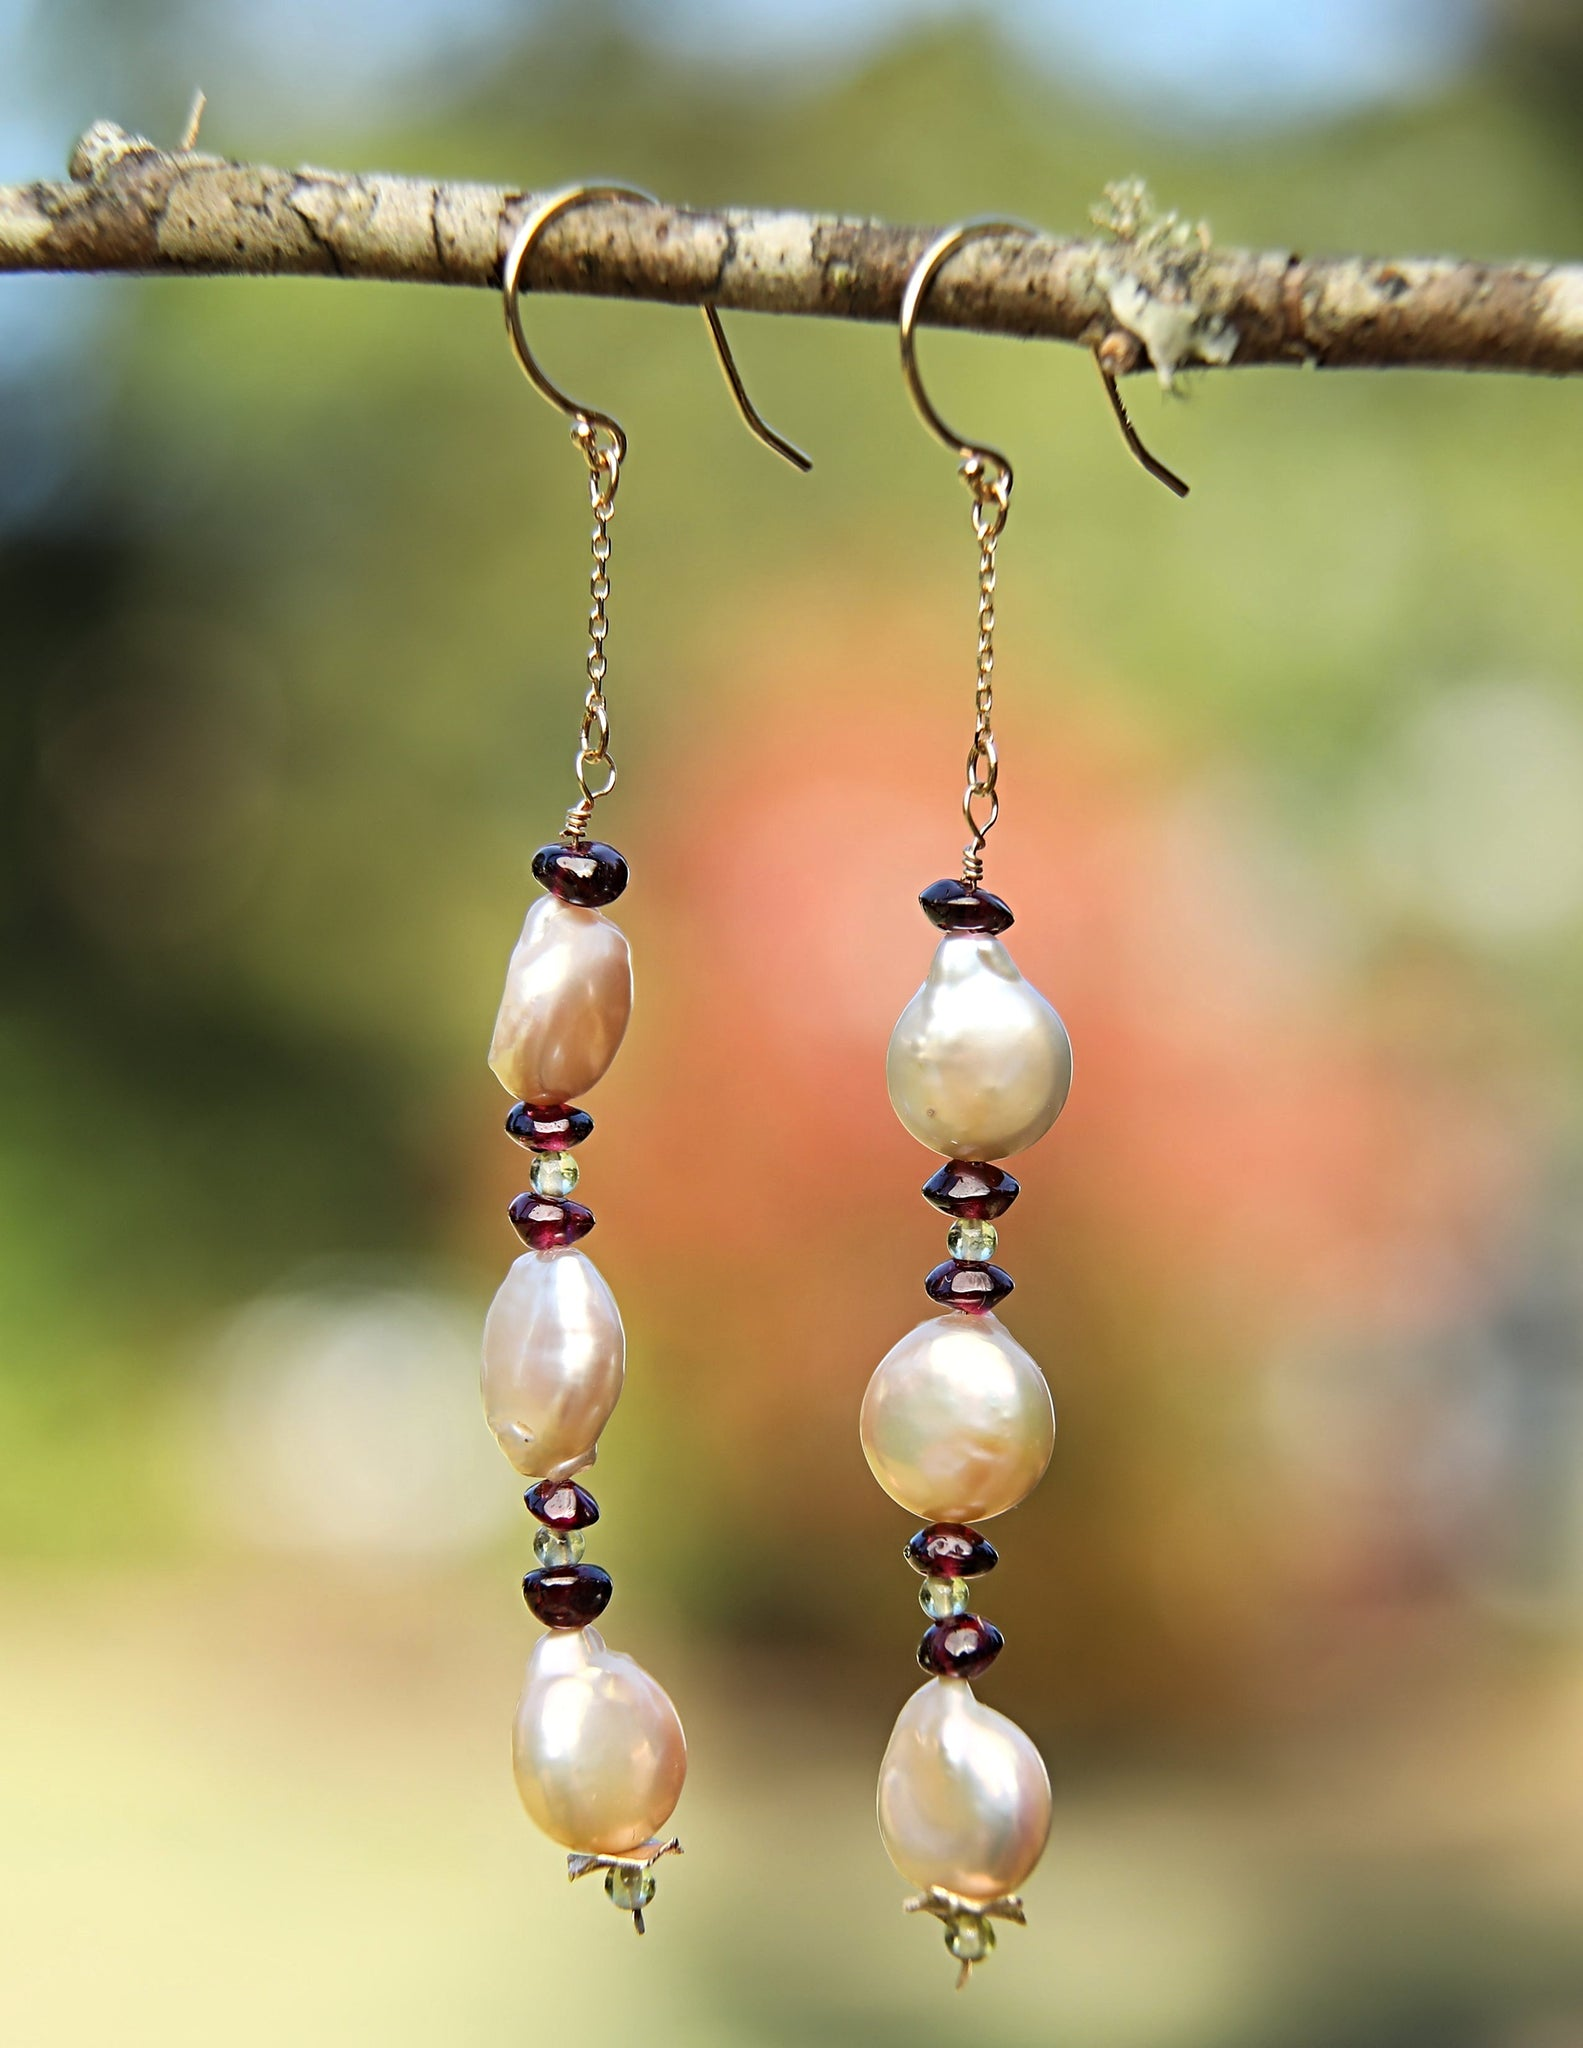 White Orchid Studios | Made in the USA | Handcrafted couture jewelry inspired by nature. |  Natural color, freshwater coin pearls, garnet rondelles, and peridot rounds with our signature 14kt yellow gold spacers and 14kt yellow gold earwires. $255